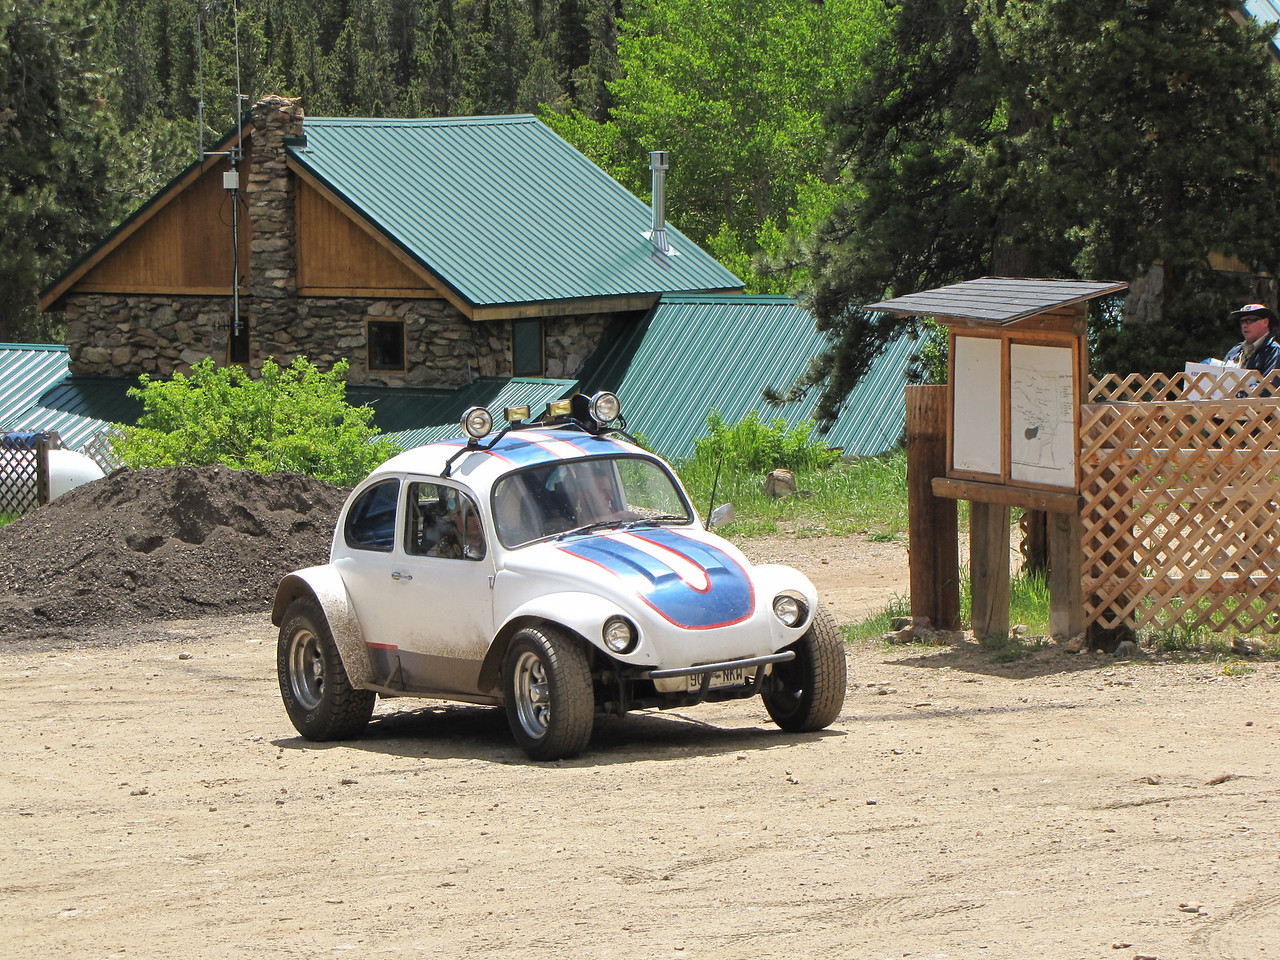 """a cool little """"herbie"""" car at the Boy Scout Camp"""